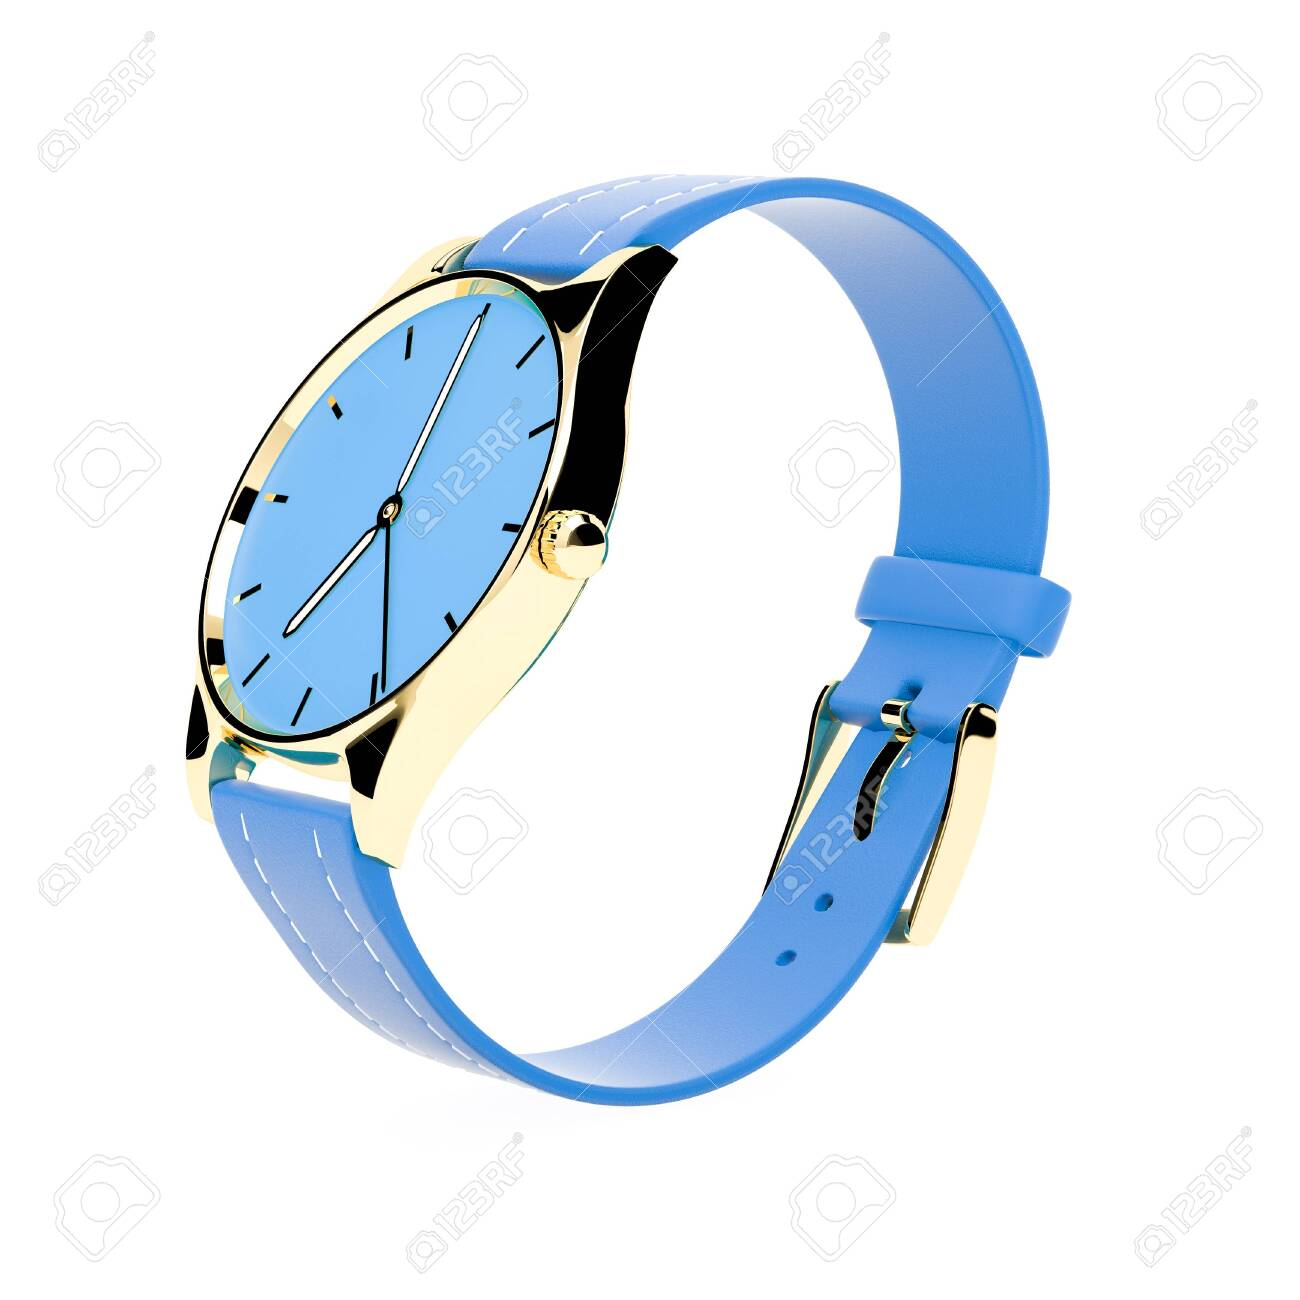 Wrist watch. Blue dial with golden case and blue leather bracelet. 3d rendering illustration isolated on white background - 150521065